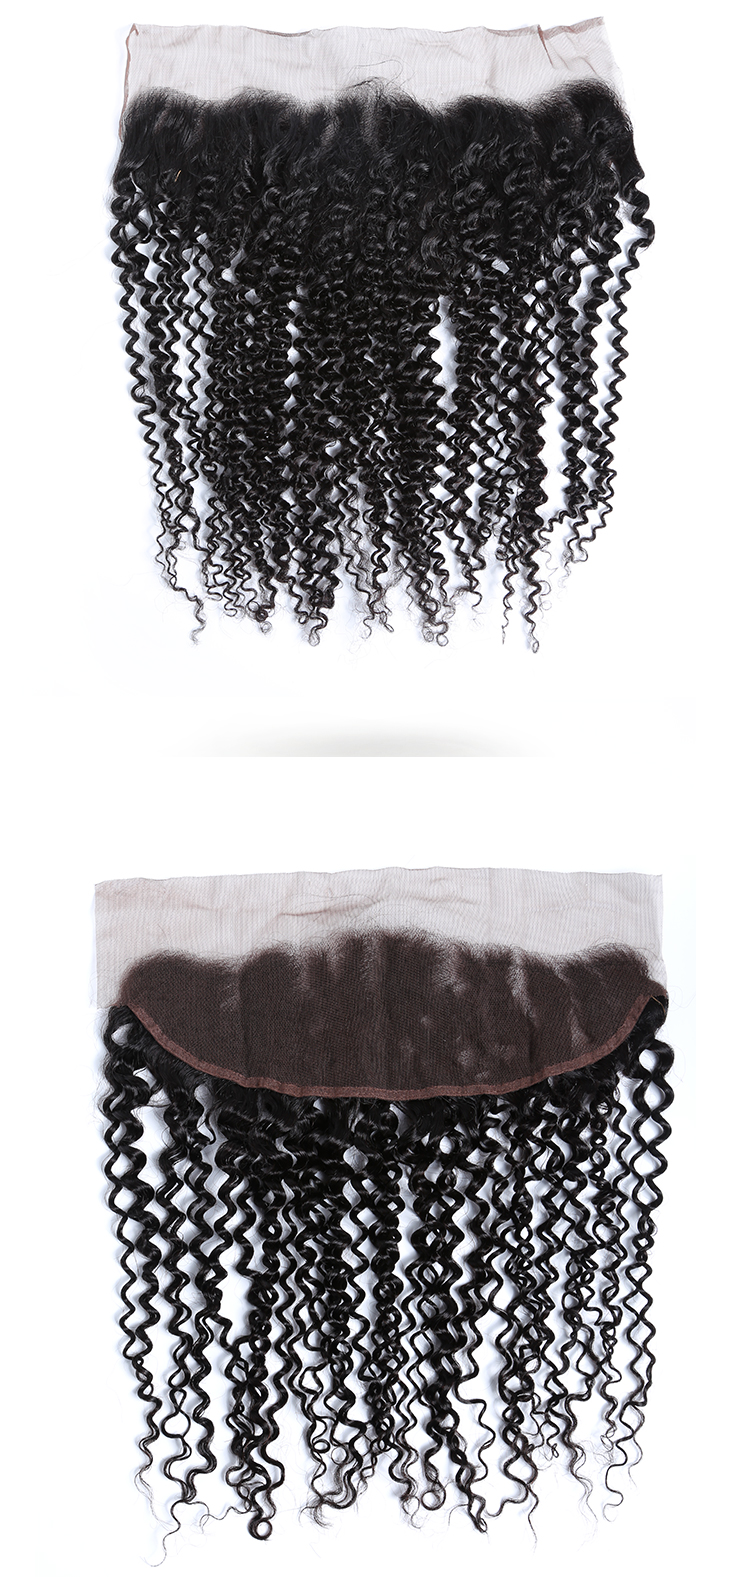 wholesale 10a grade peruvian virgin hair bundles,unprocessed virgin peruvian hair 13*4 Jerry curly closure